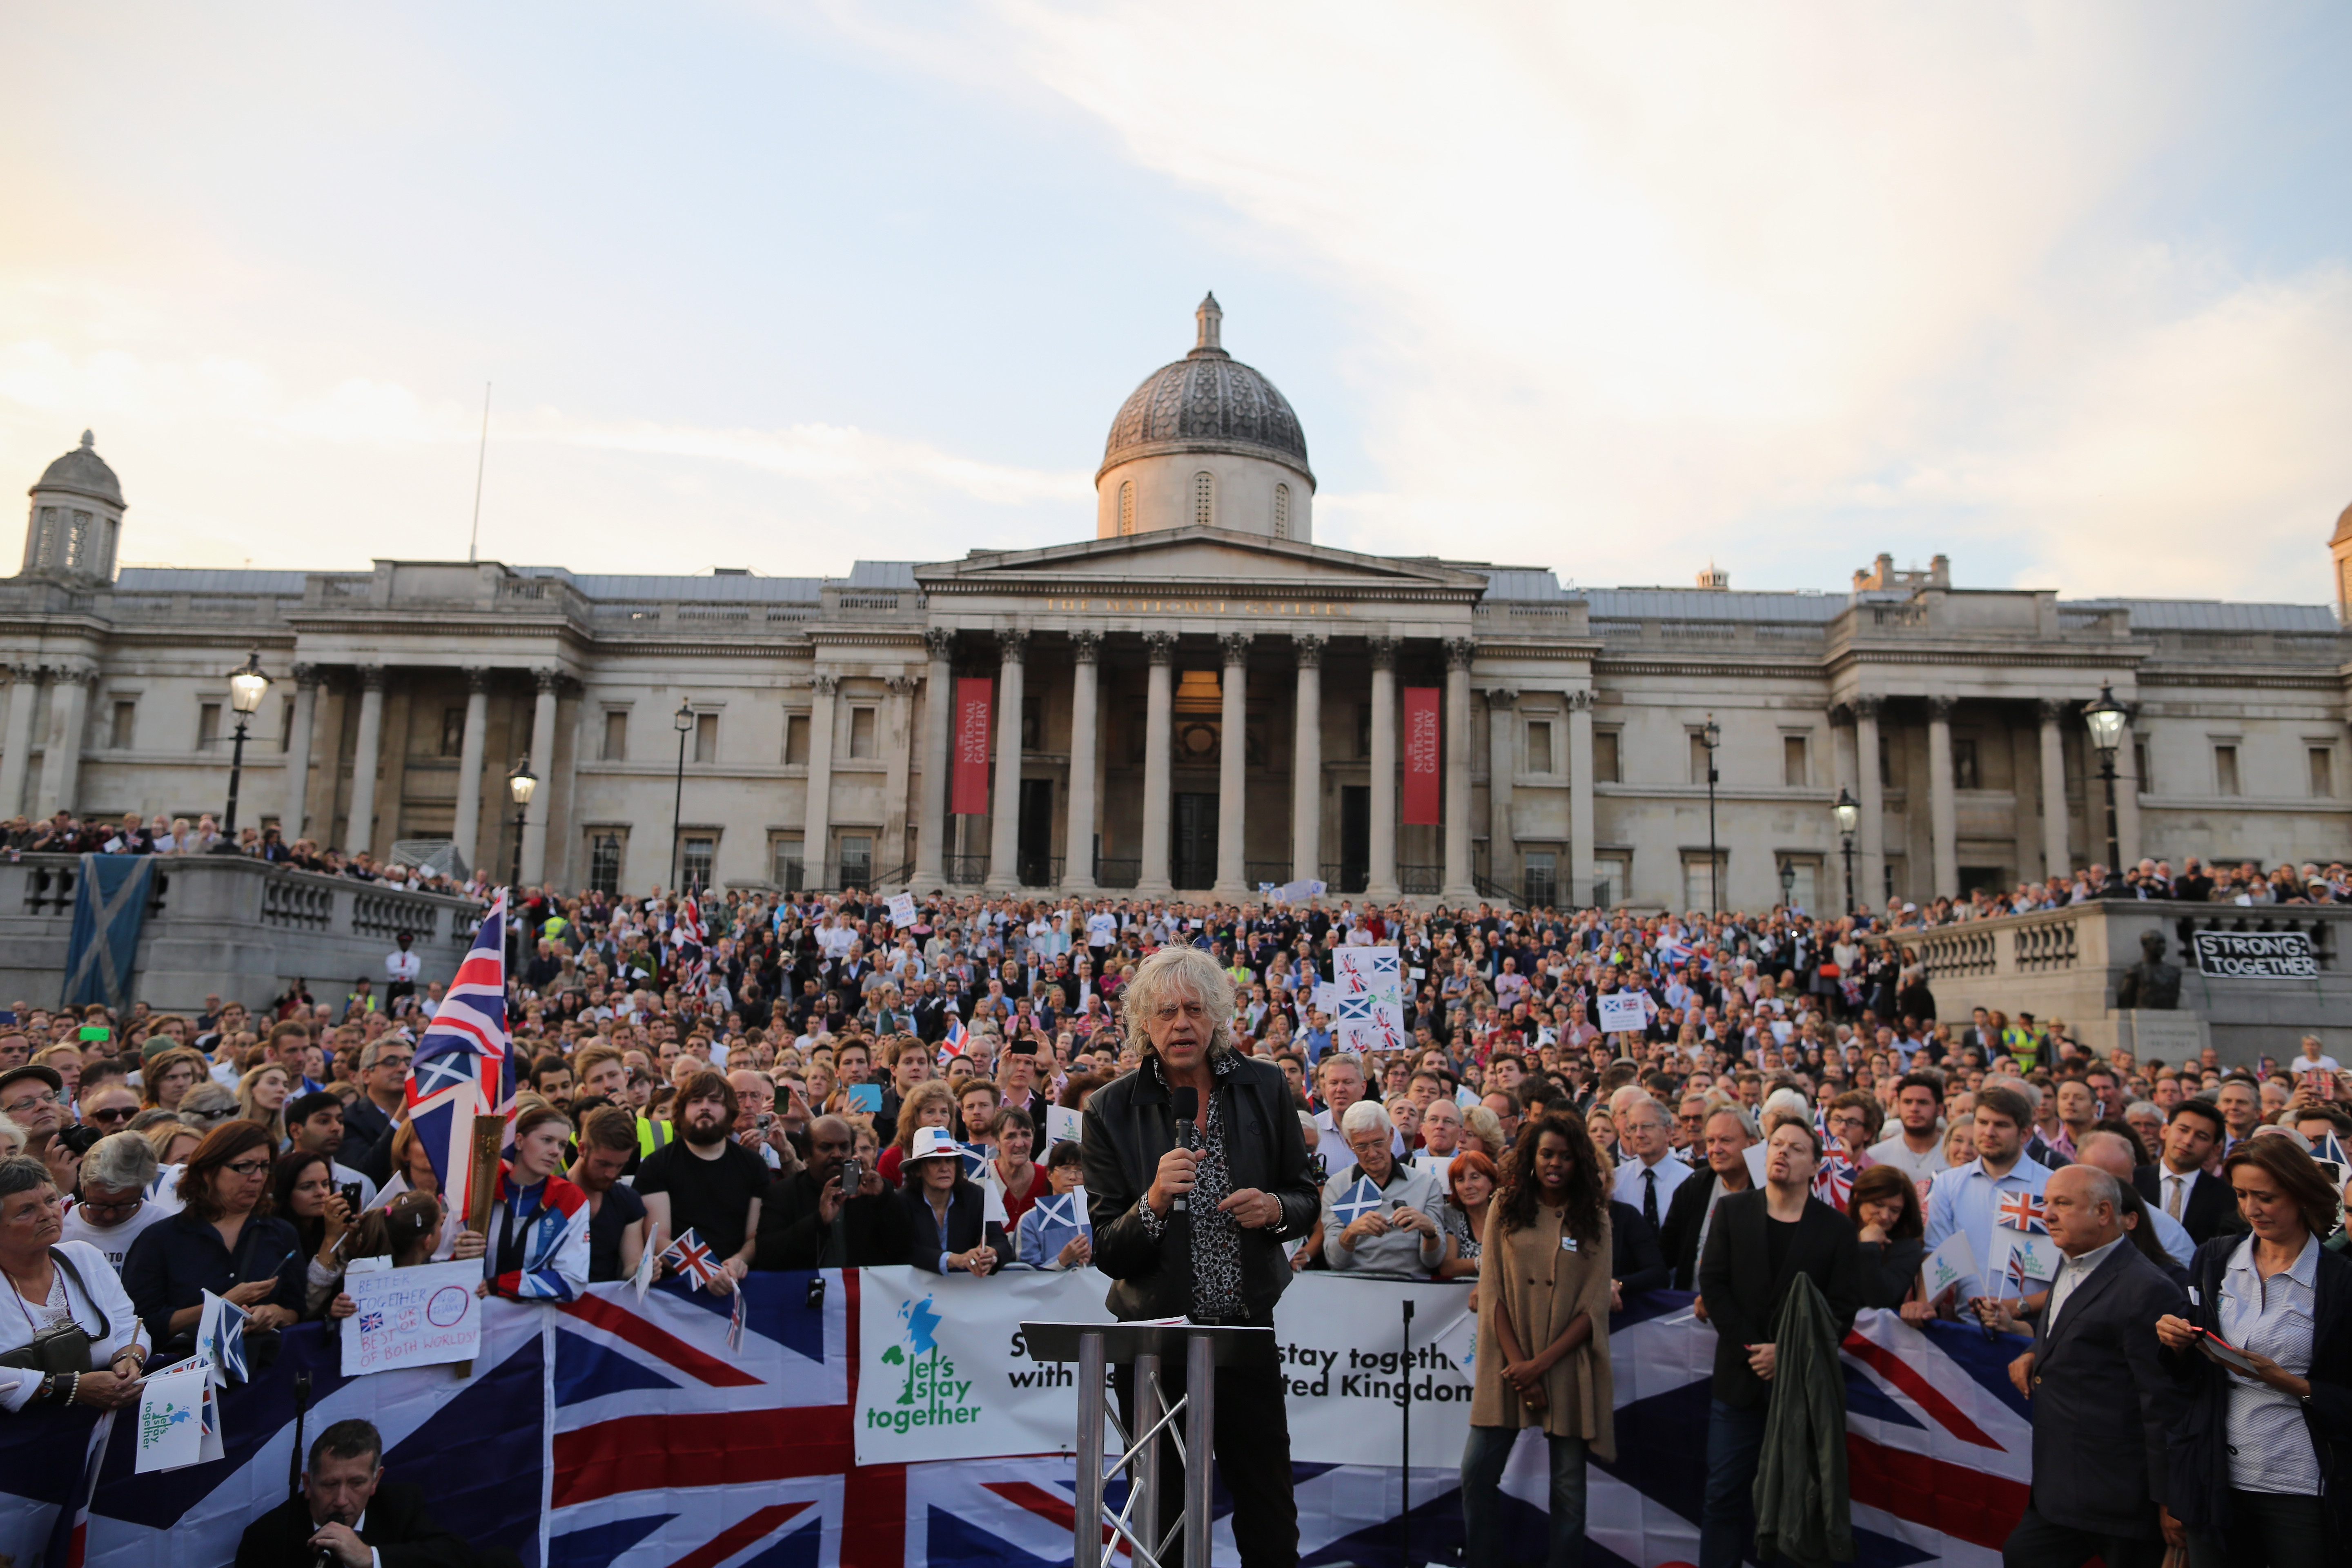 Musician Bob Geldof speaks to members of the public and supporters of the Better Together campaign at Trafalgar Square in London on Sept. 15, 2014